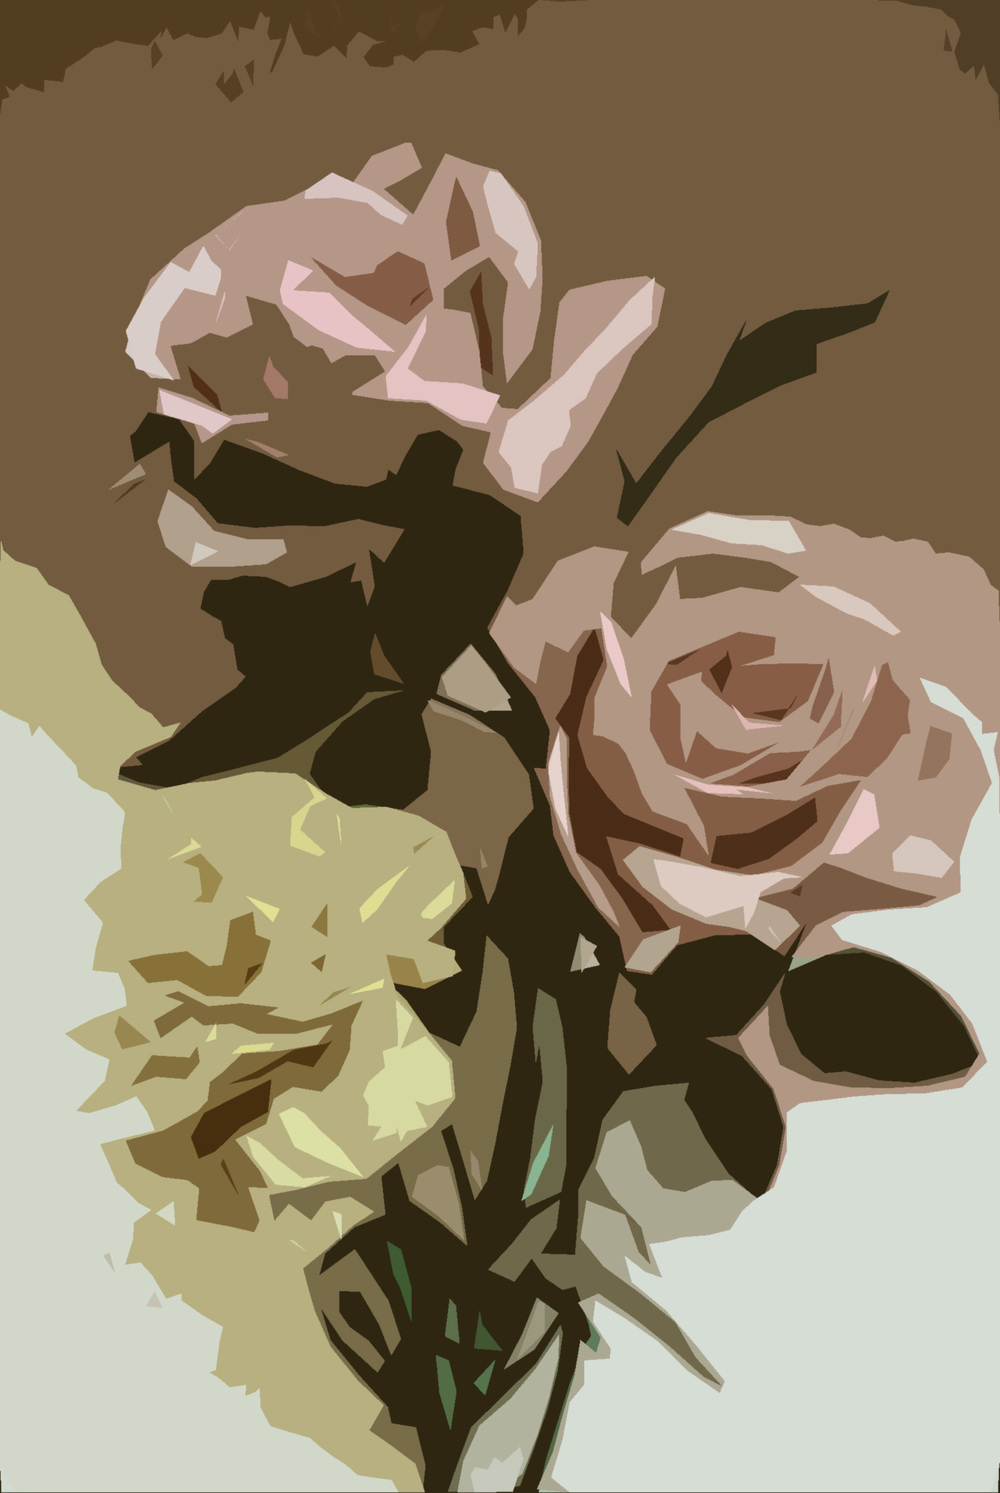 Vintage flower illustration given the 'Cut Out' filter in Photoshop